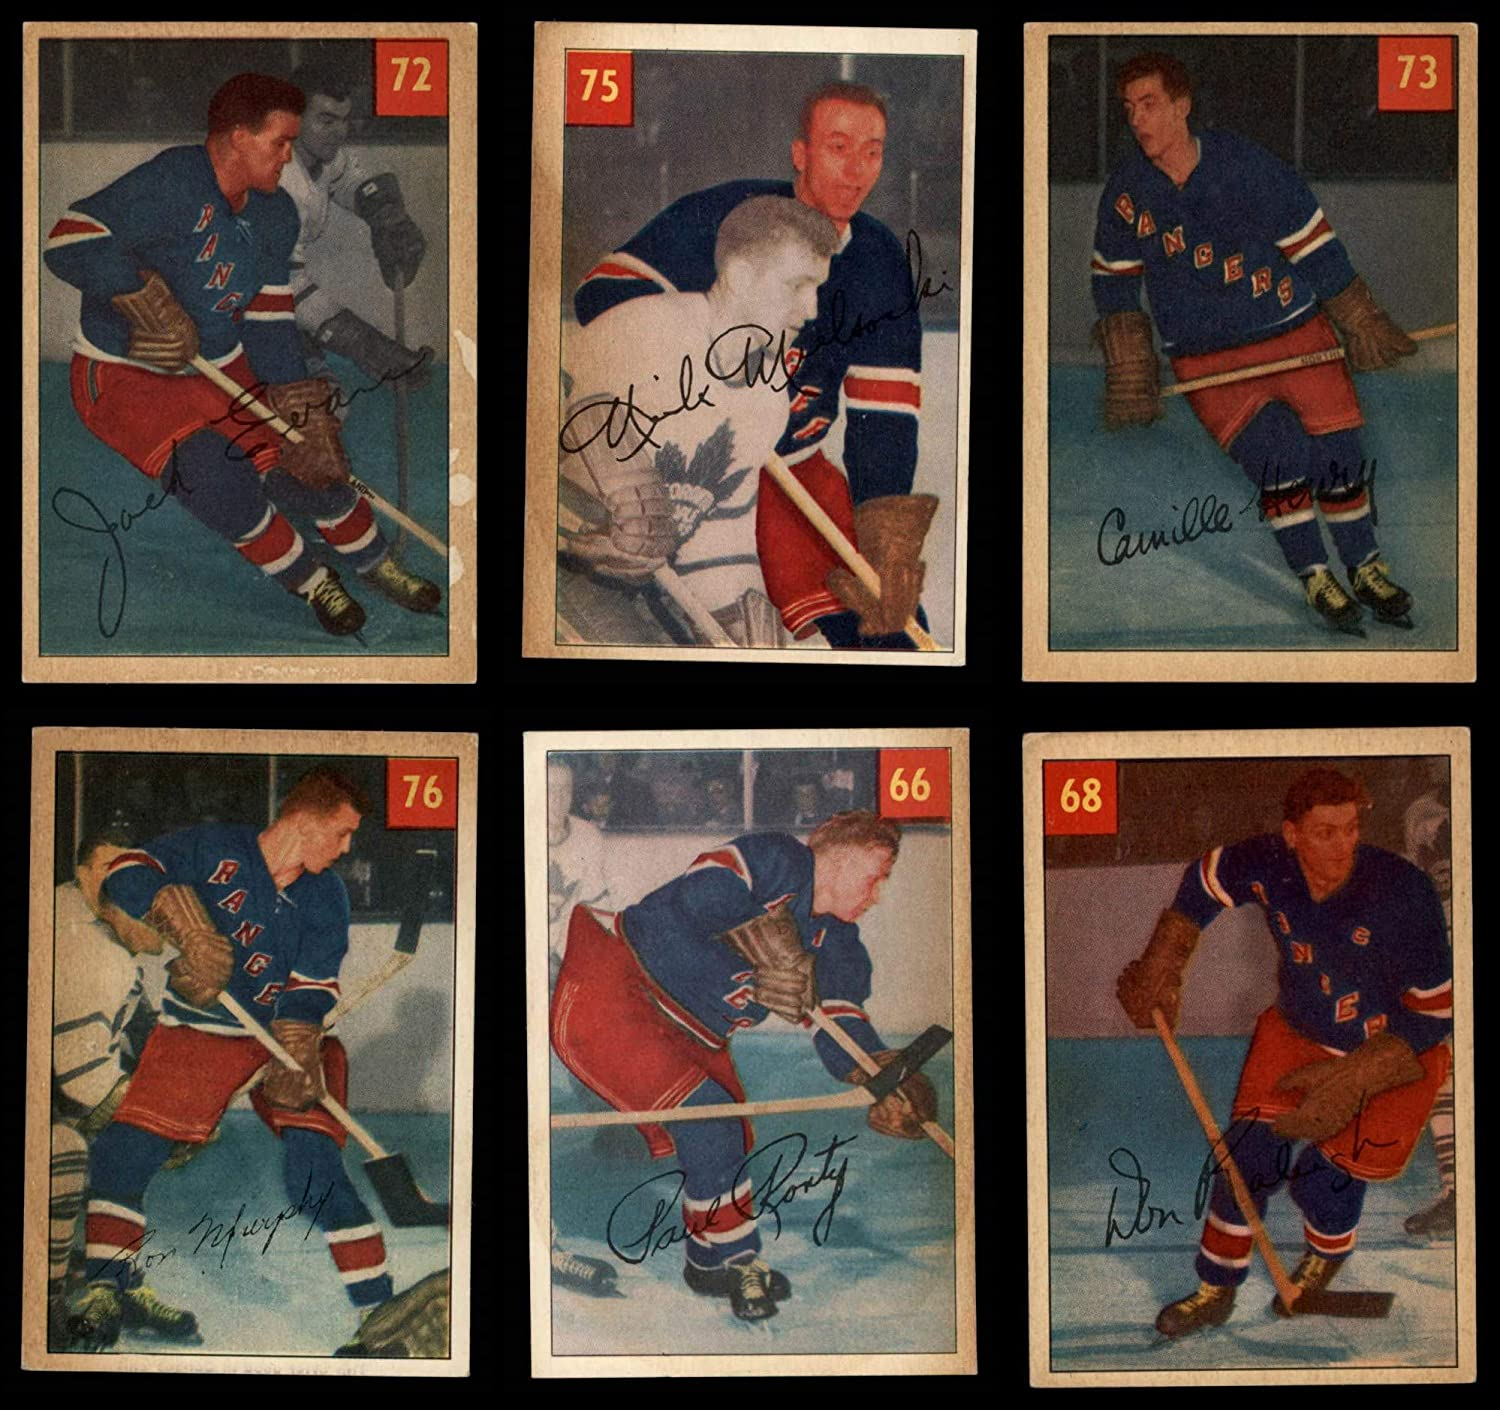 1954-55 Parkhurst New York Rangers Near Team Set New York Rangers - Hockey (Baseball Set) Dean's Cards 5 - EX Rangers - Hockey 81jfYGuWbnLSL1500_